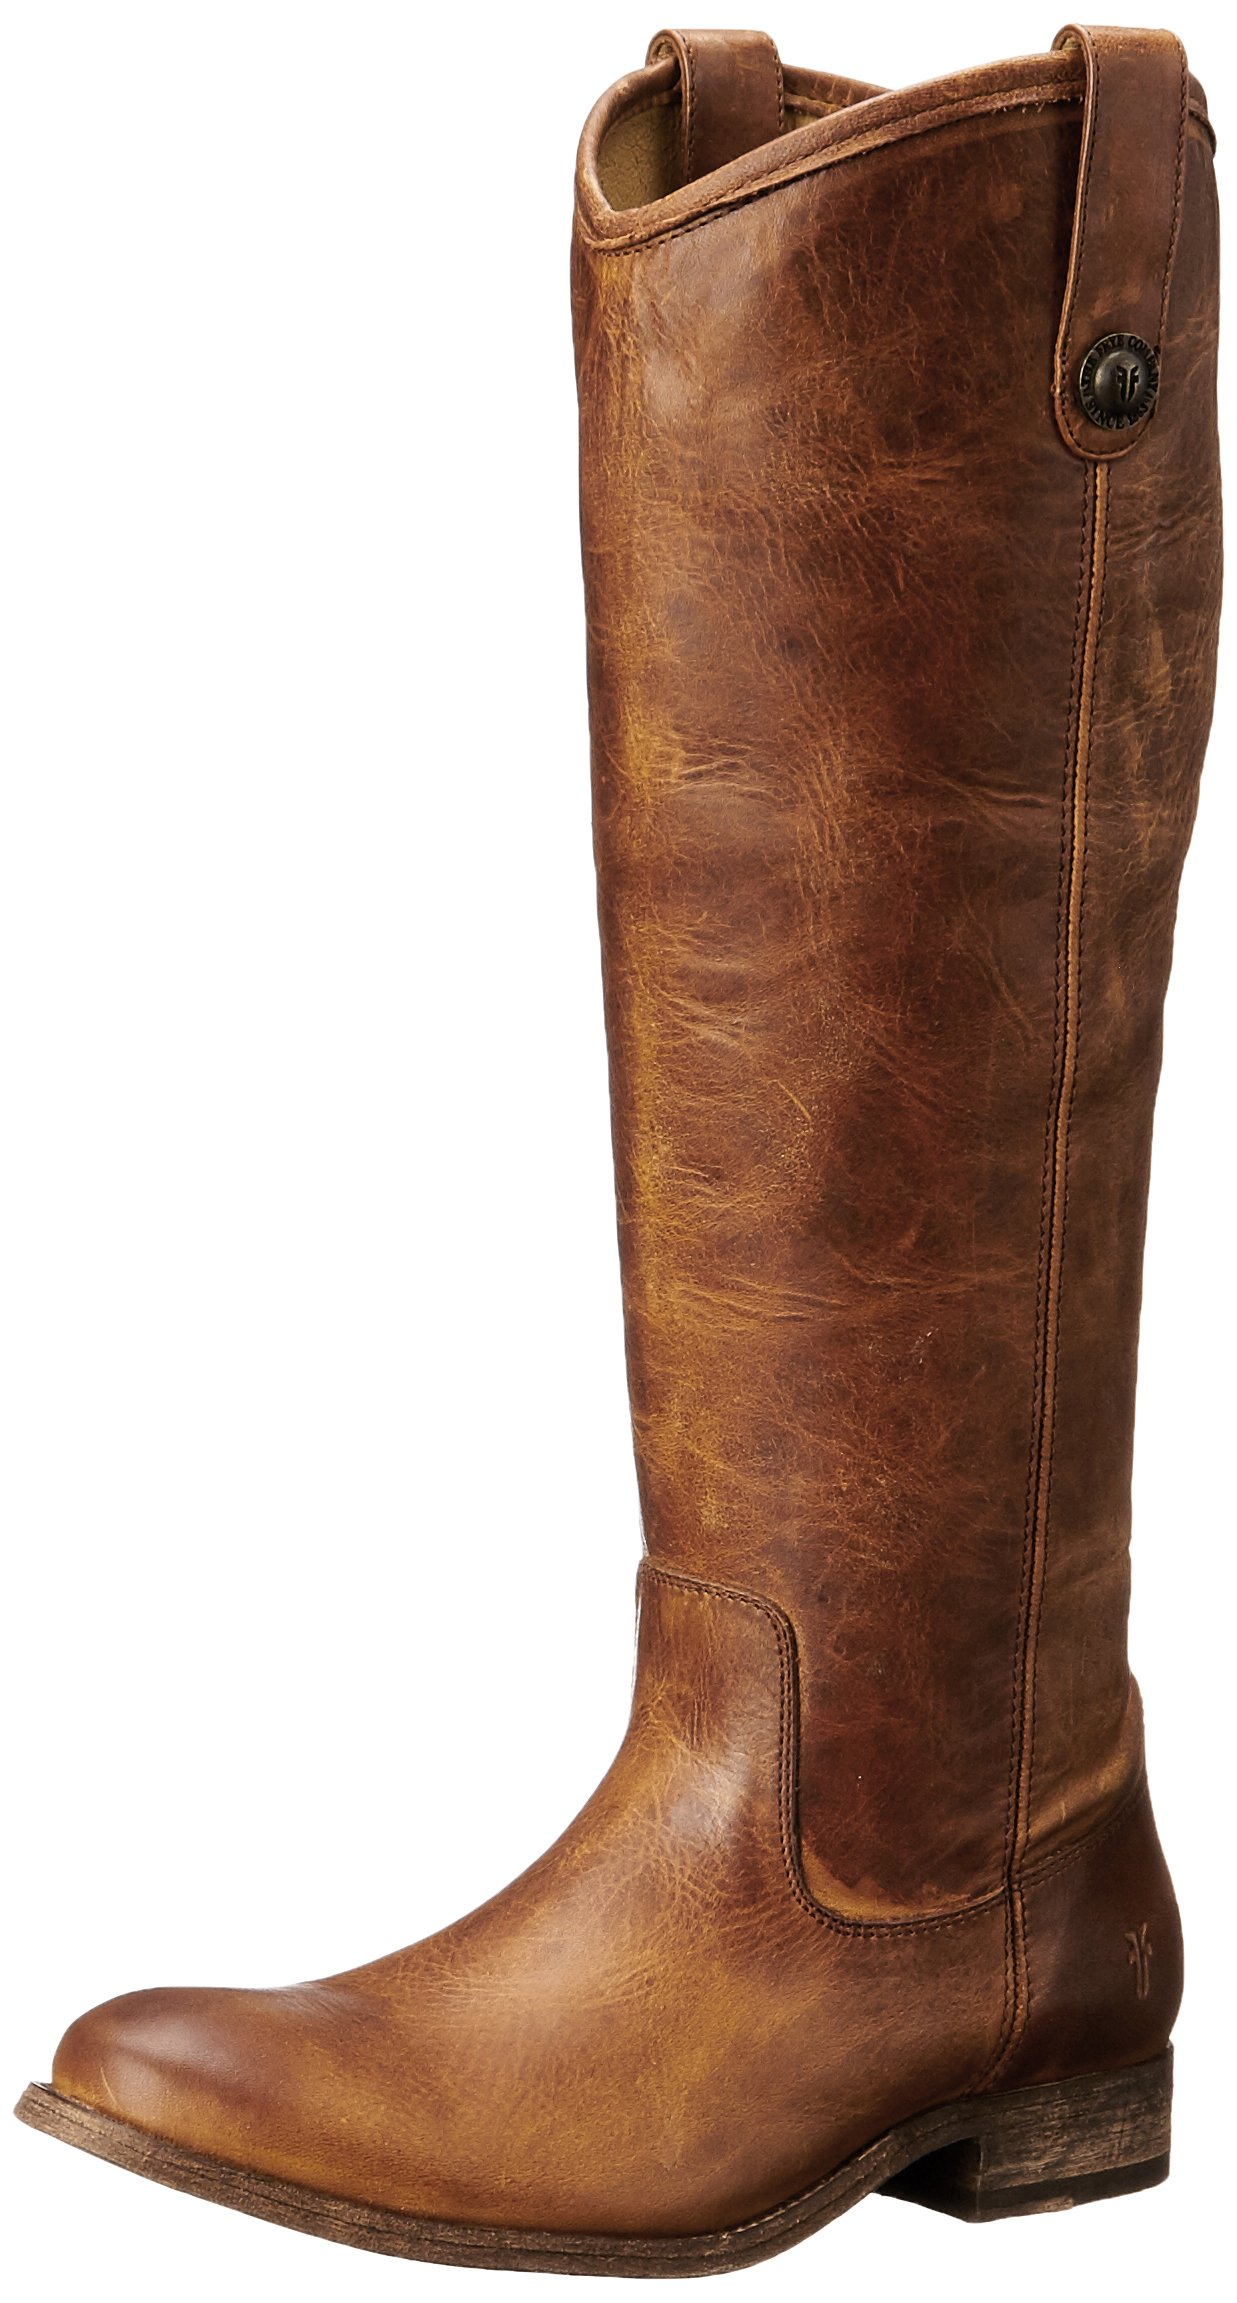 FRYE Women's Melissa Button Boot, Cognac Washed Antique Pull-Up, 8 M US